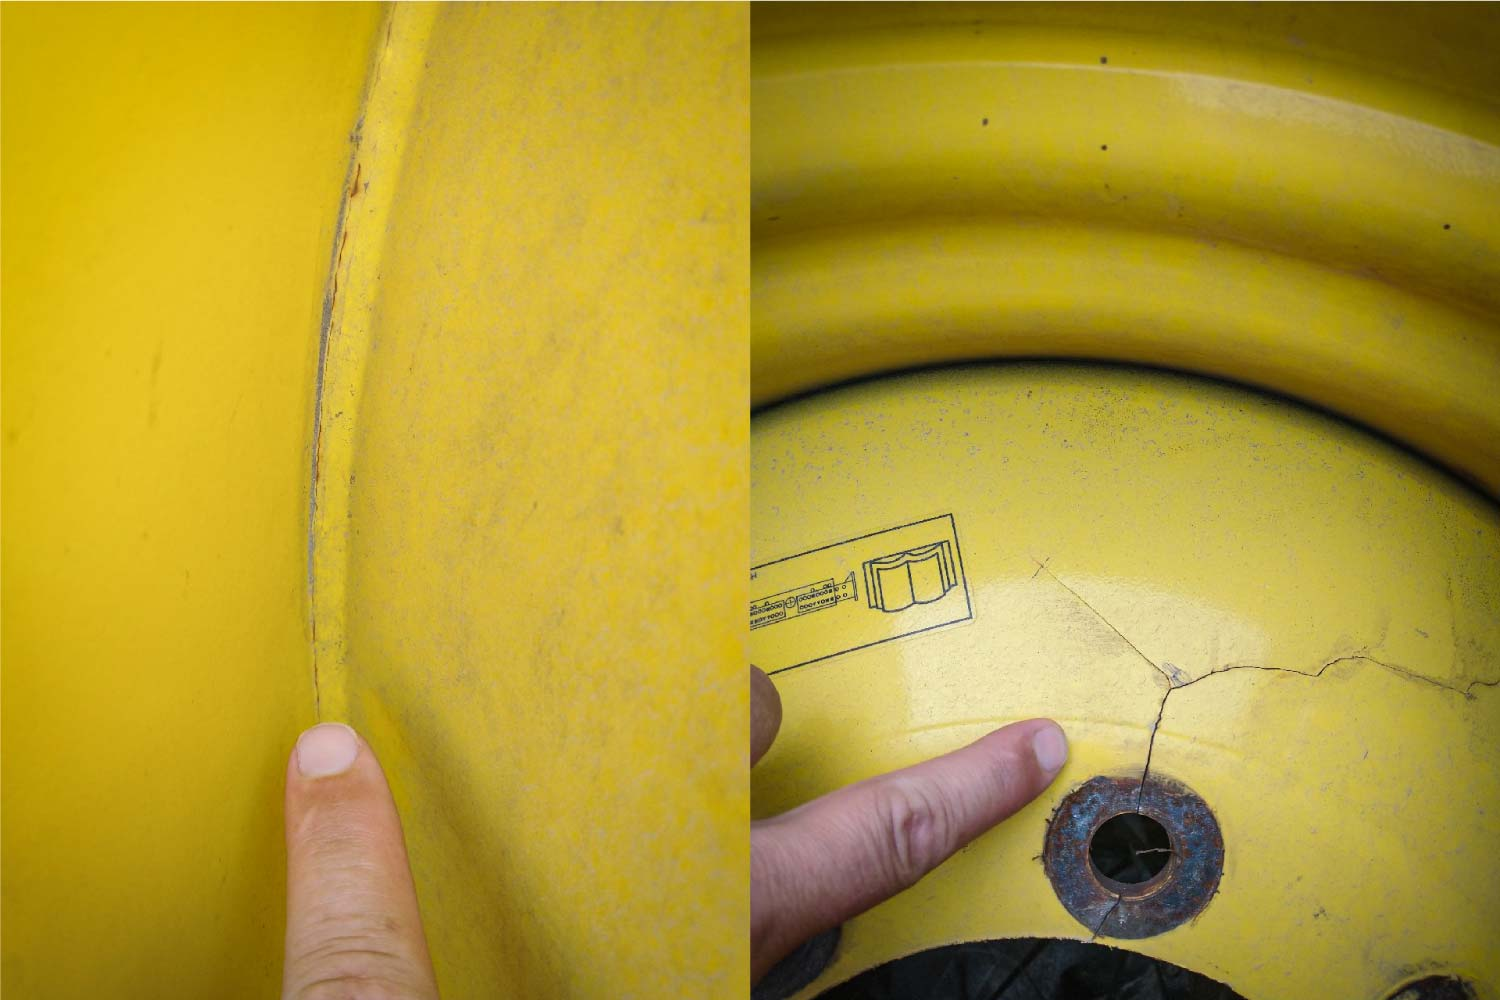 Cracked wheels can stop harvest in your tracks. Carefully examine wheels for cracks near bolt holes and welds.